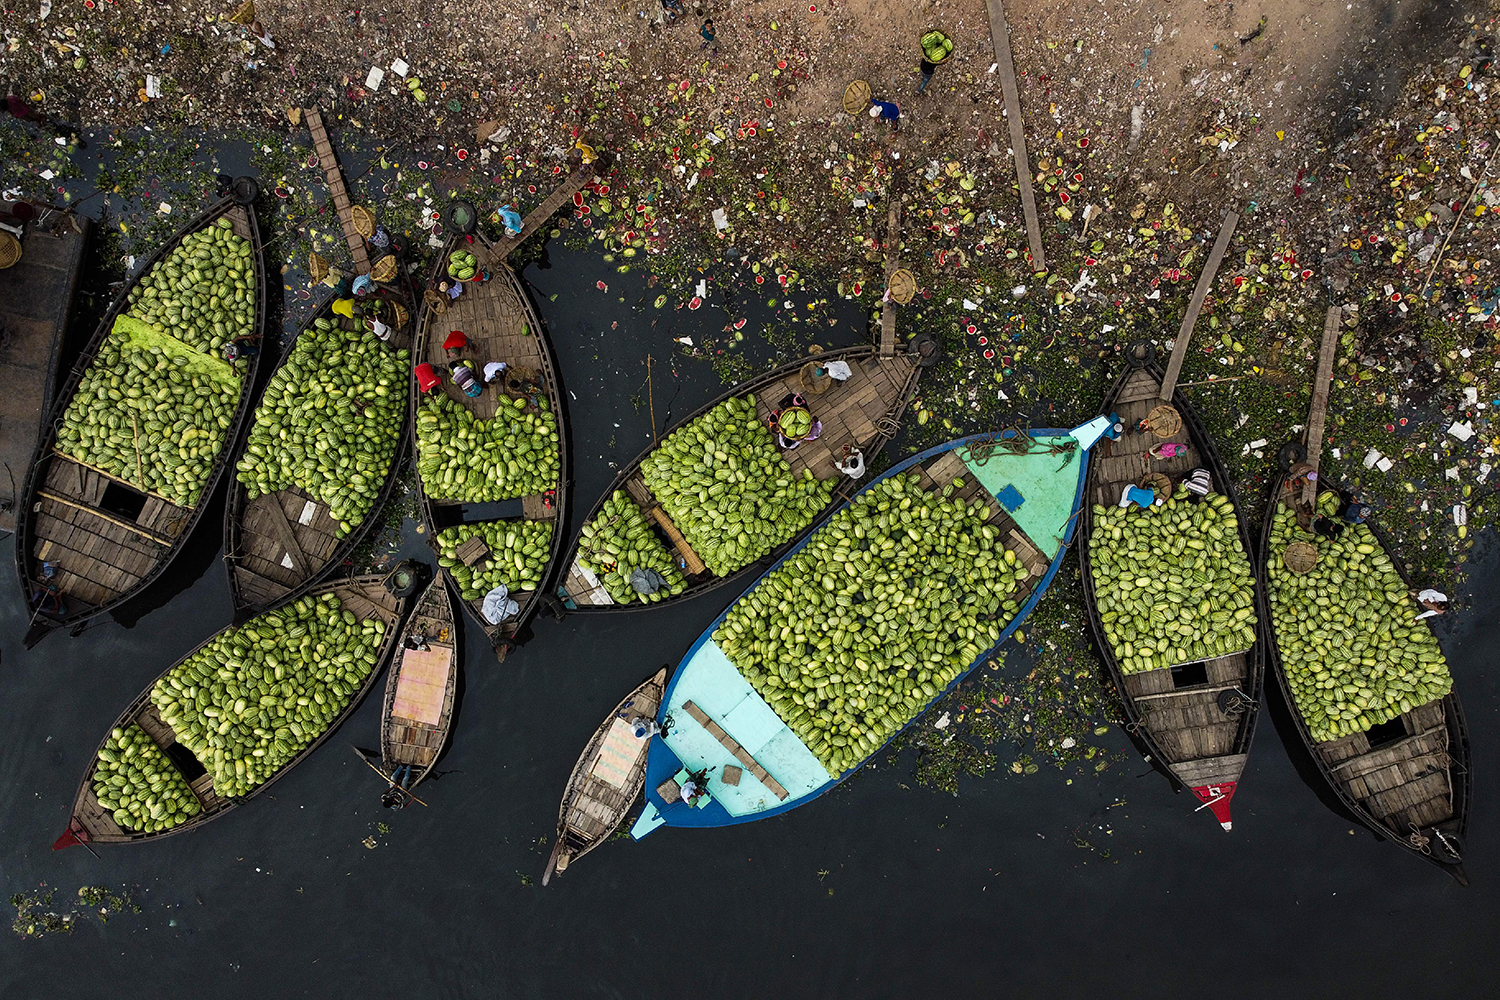 Workers load watermelons into boats in the Buriganga River in Dhaka, Bangladesh, on April 17. MUNIR UZ ZAMAN/AFP via Getty Images